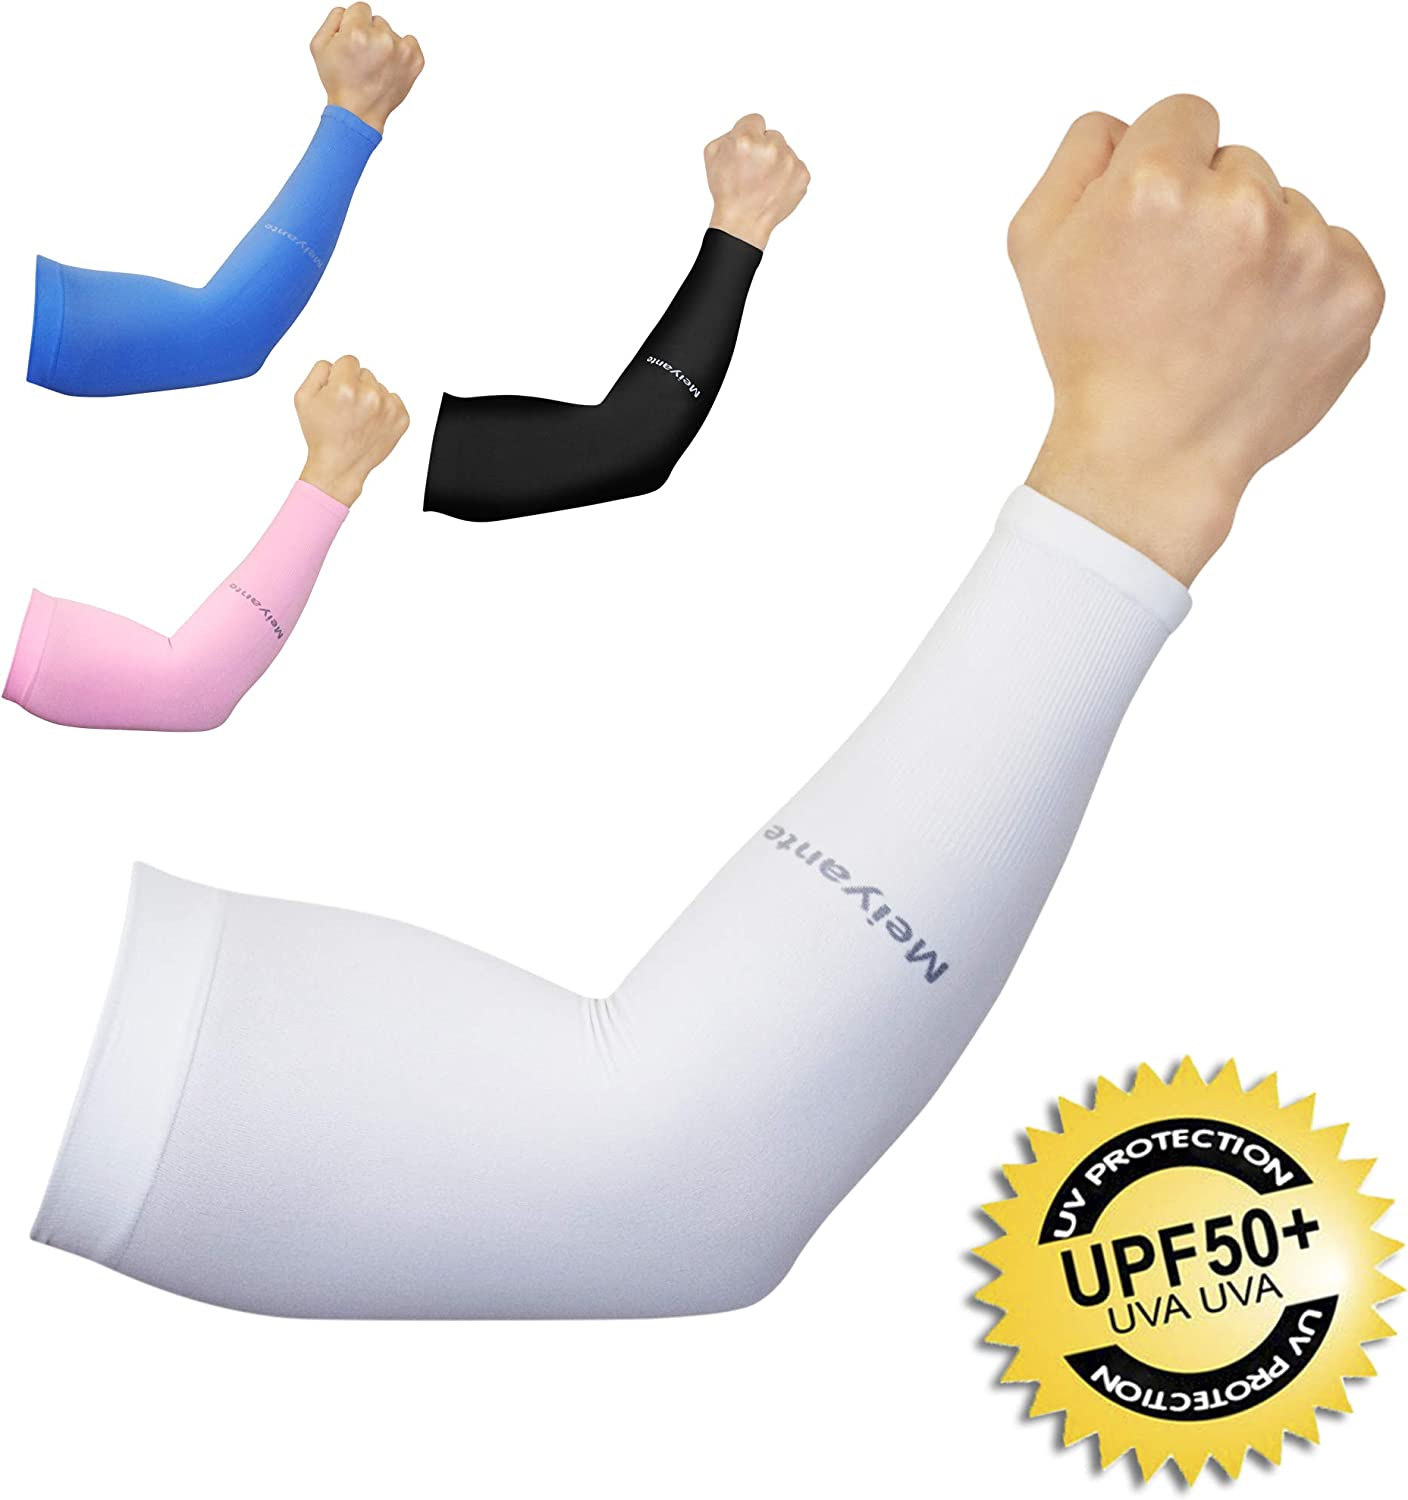 Cooling Arm Sleeves for Men & Women (1 pair), UV Protective UPF 50 Long Sun Sleeves, Tattoo Cover up Sleeves to Cover Arms